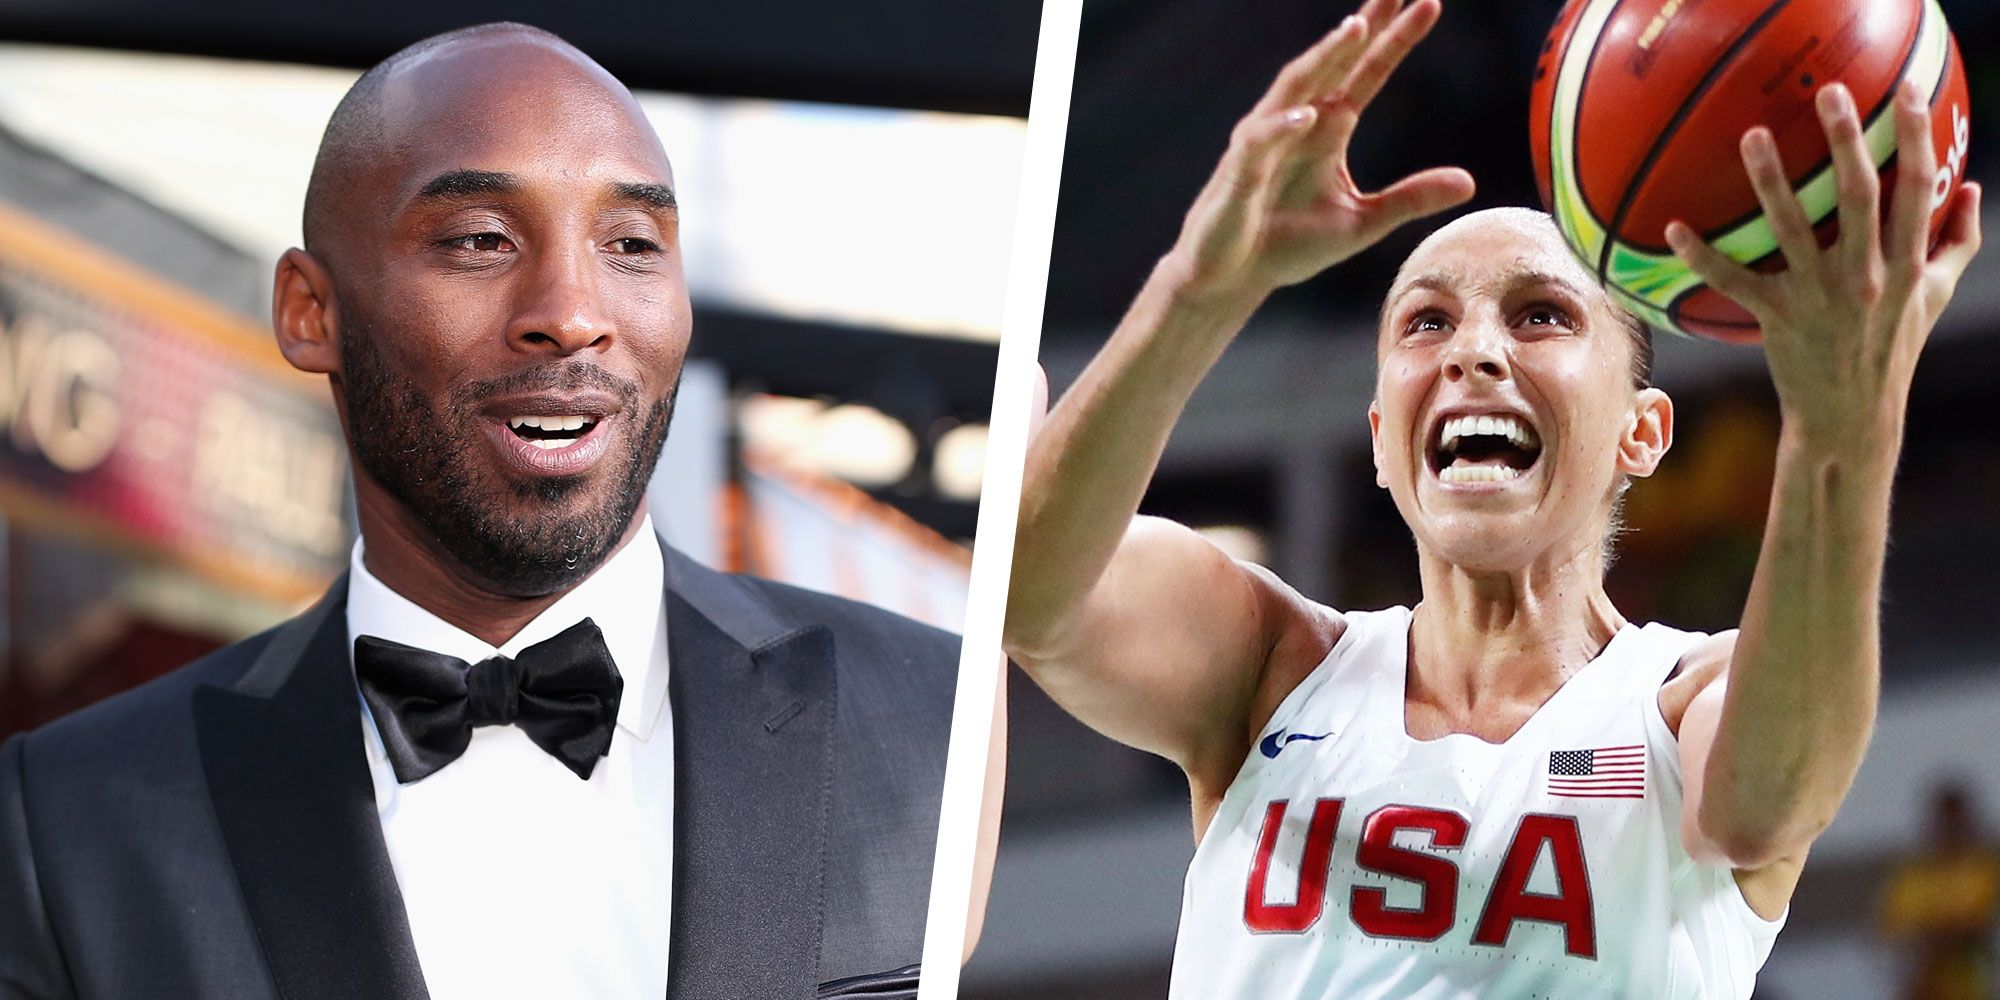 Kobe Bryant Thinks These 3 Women Are Capable of Playing in the NBA 'Right Now'